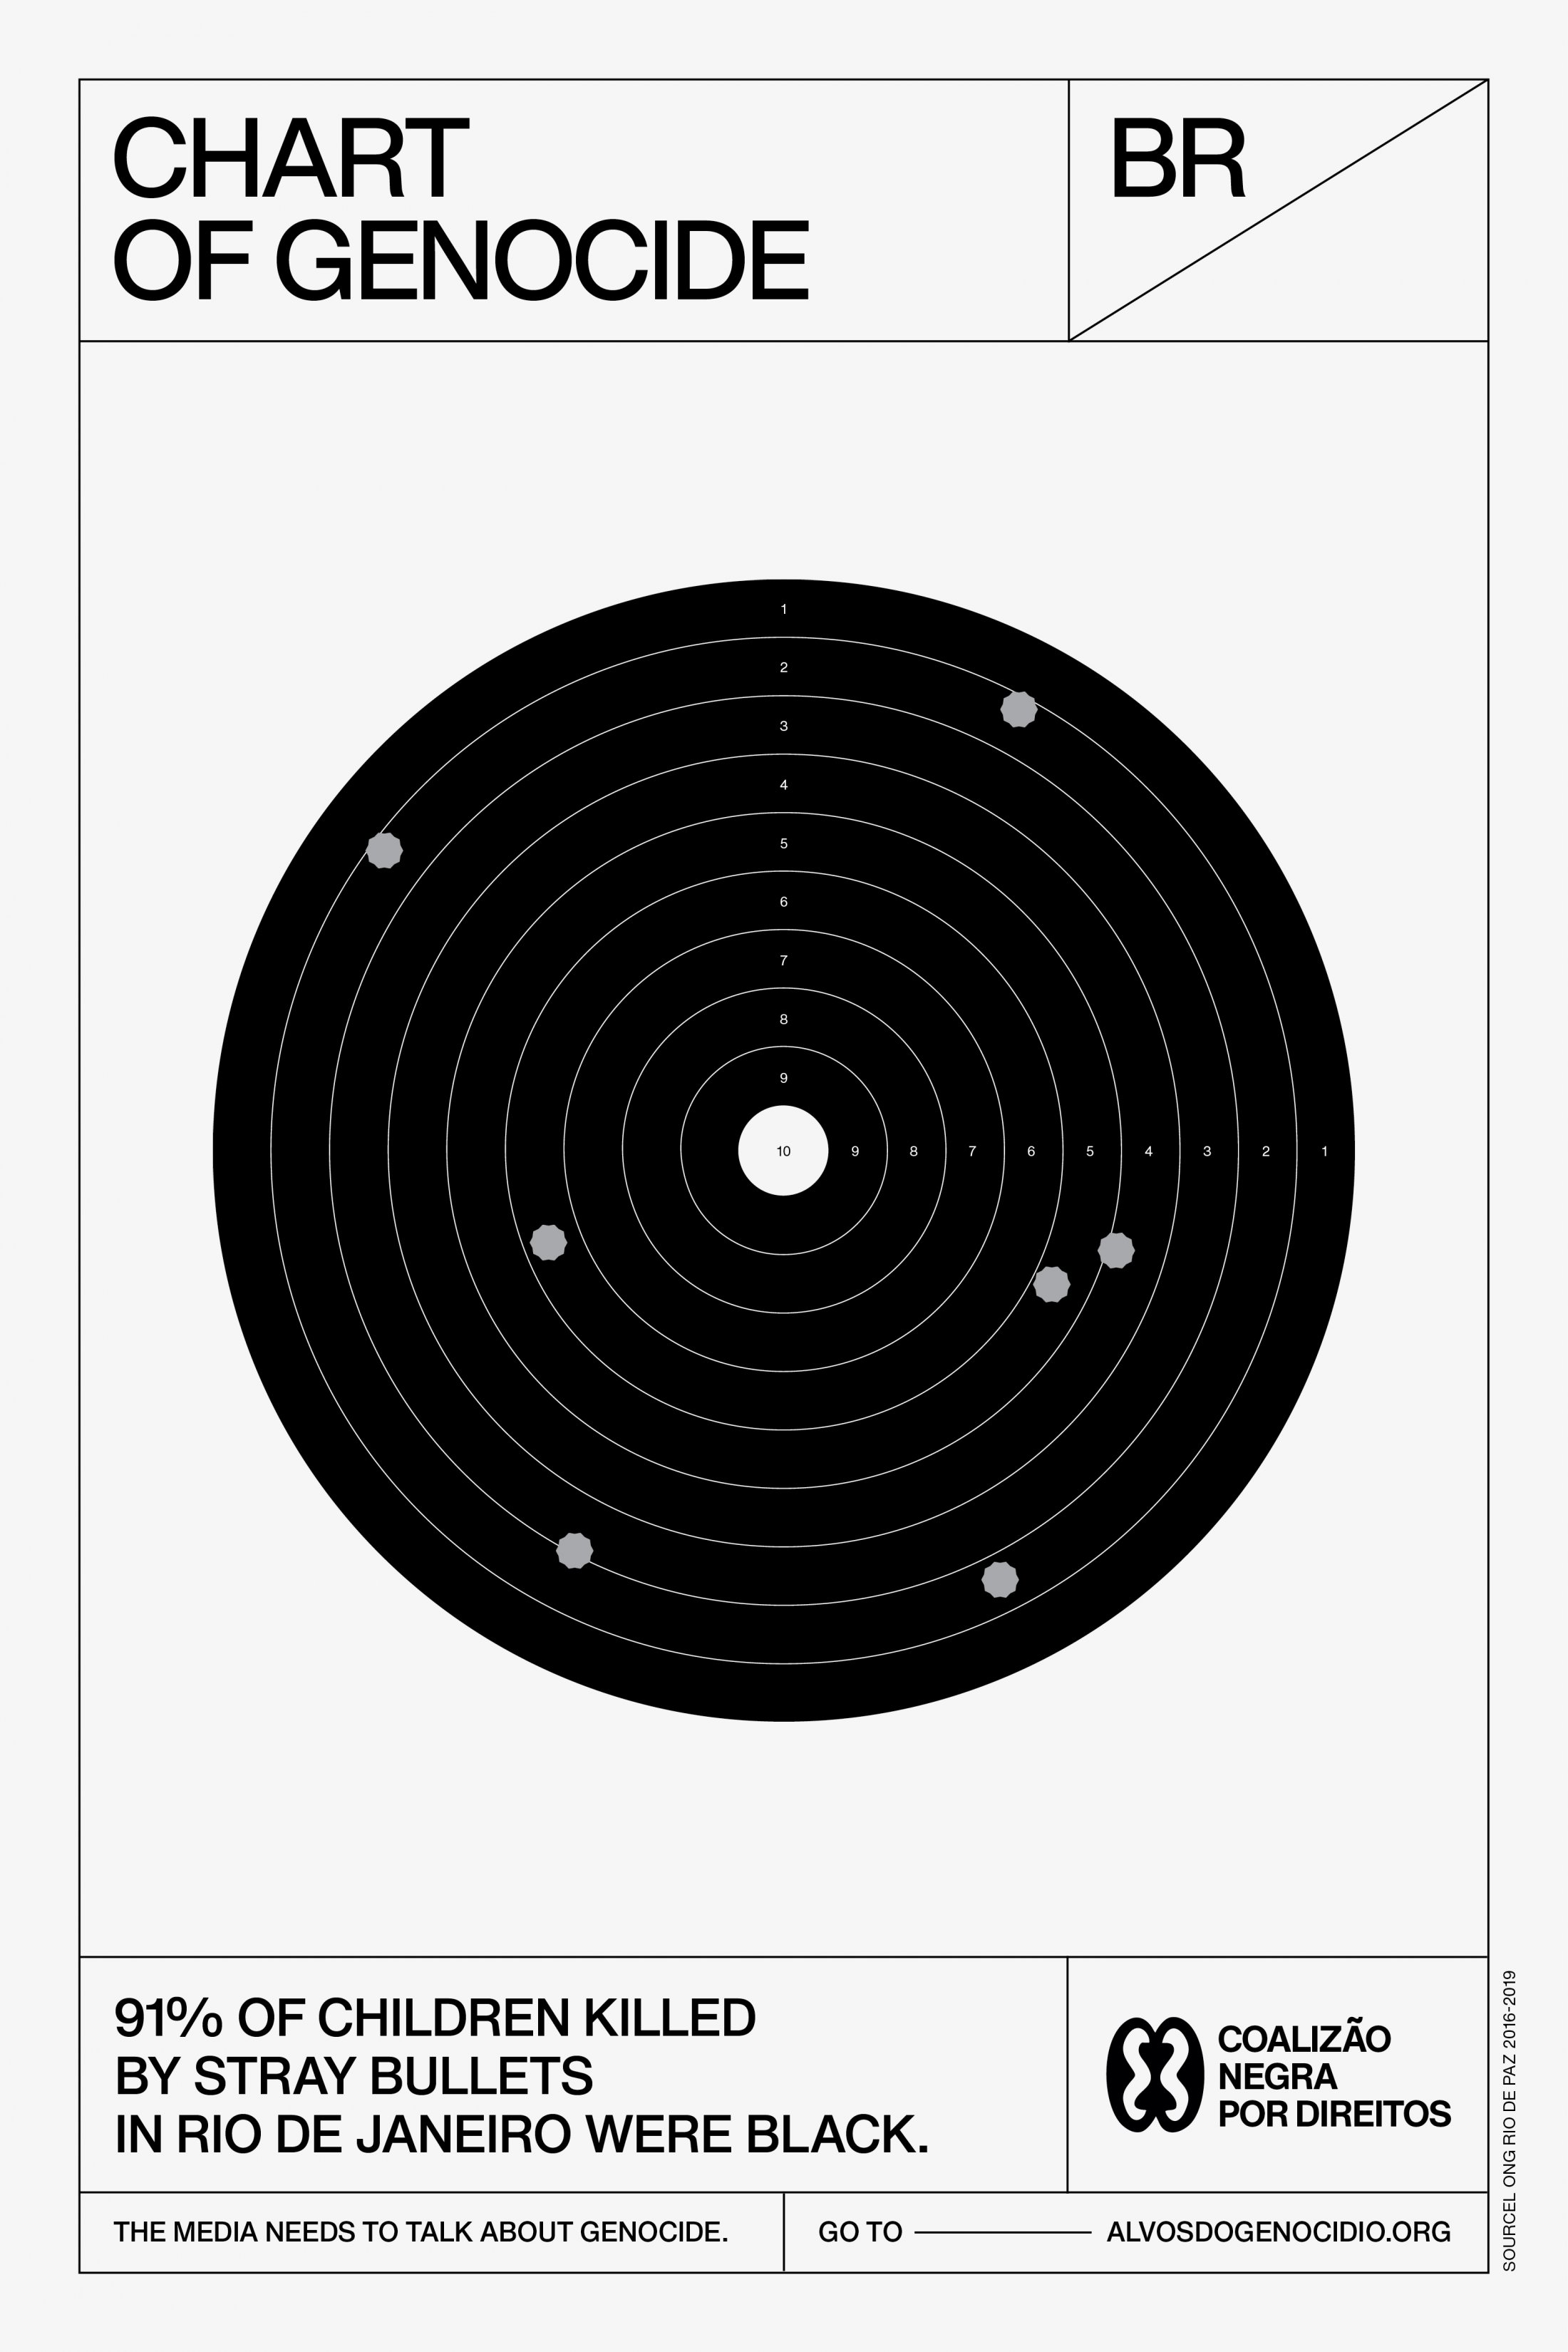 Thumbnail for 91% of children killed by stray bullets in Rio de Janeiro were black.